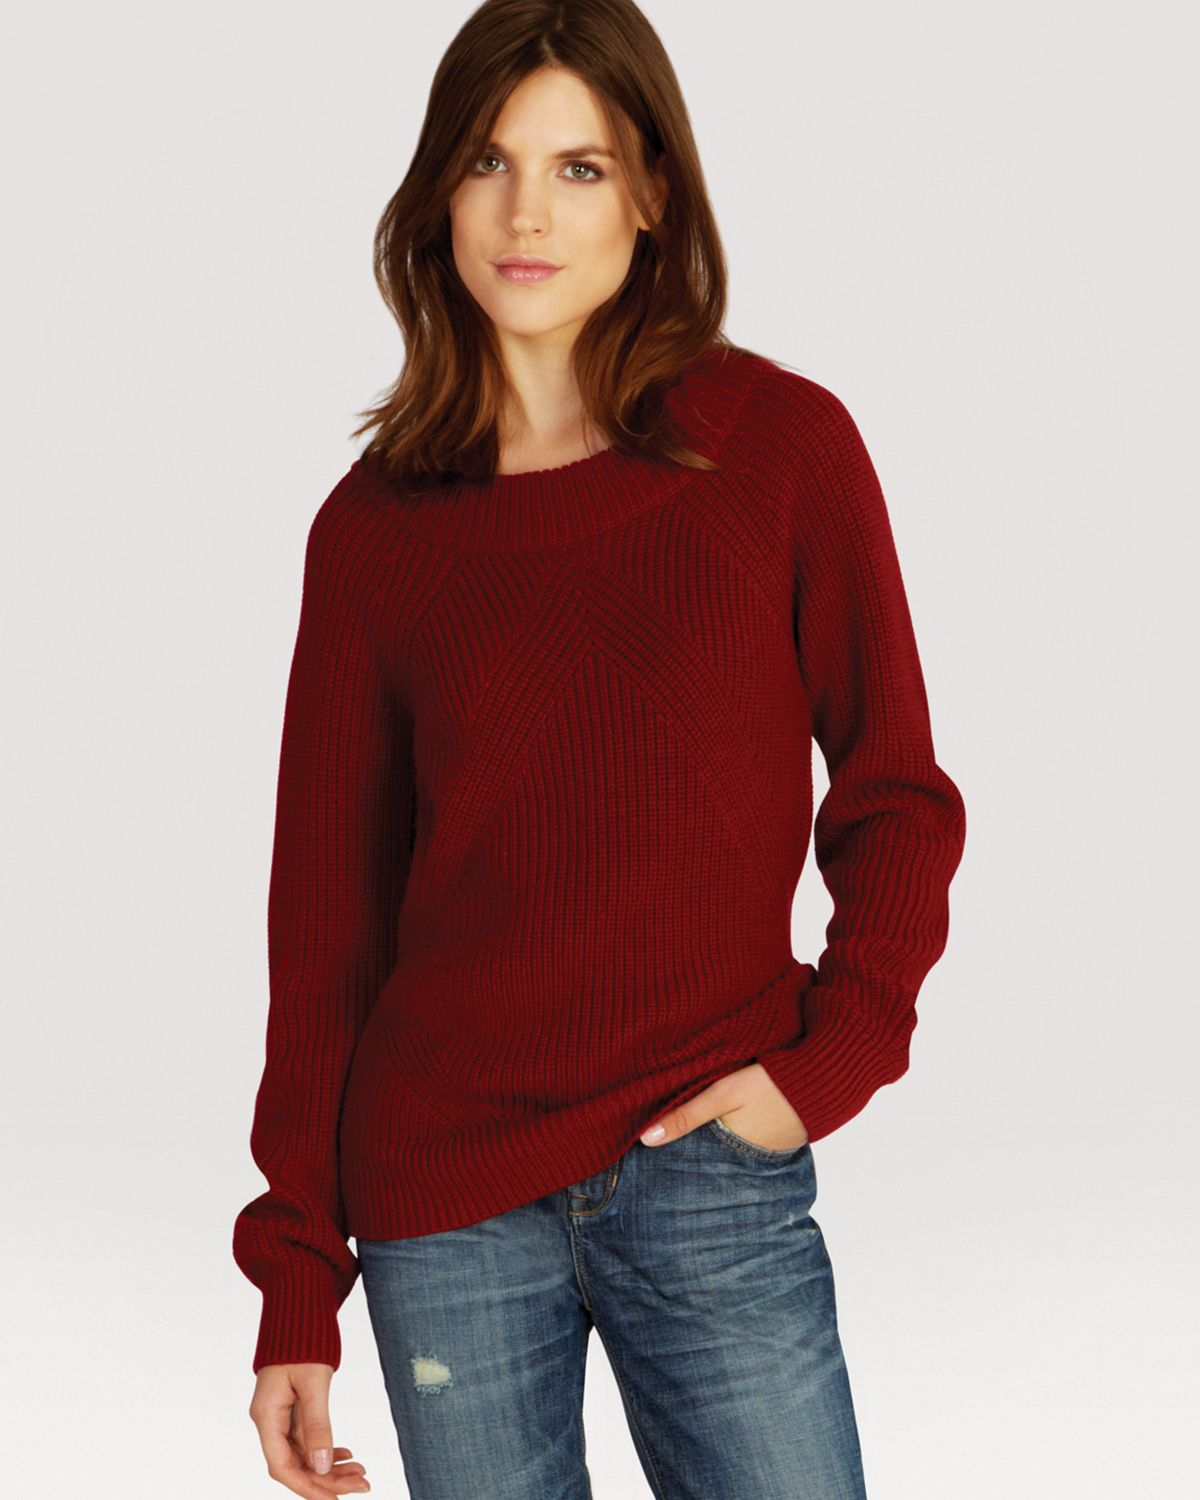 Karen Millen Sweater - '50S Boat Neck in Red (Dark Red) | Lyst